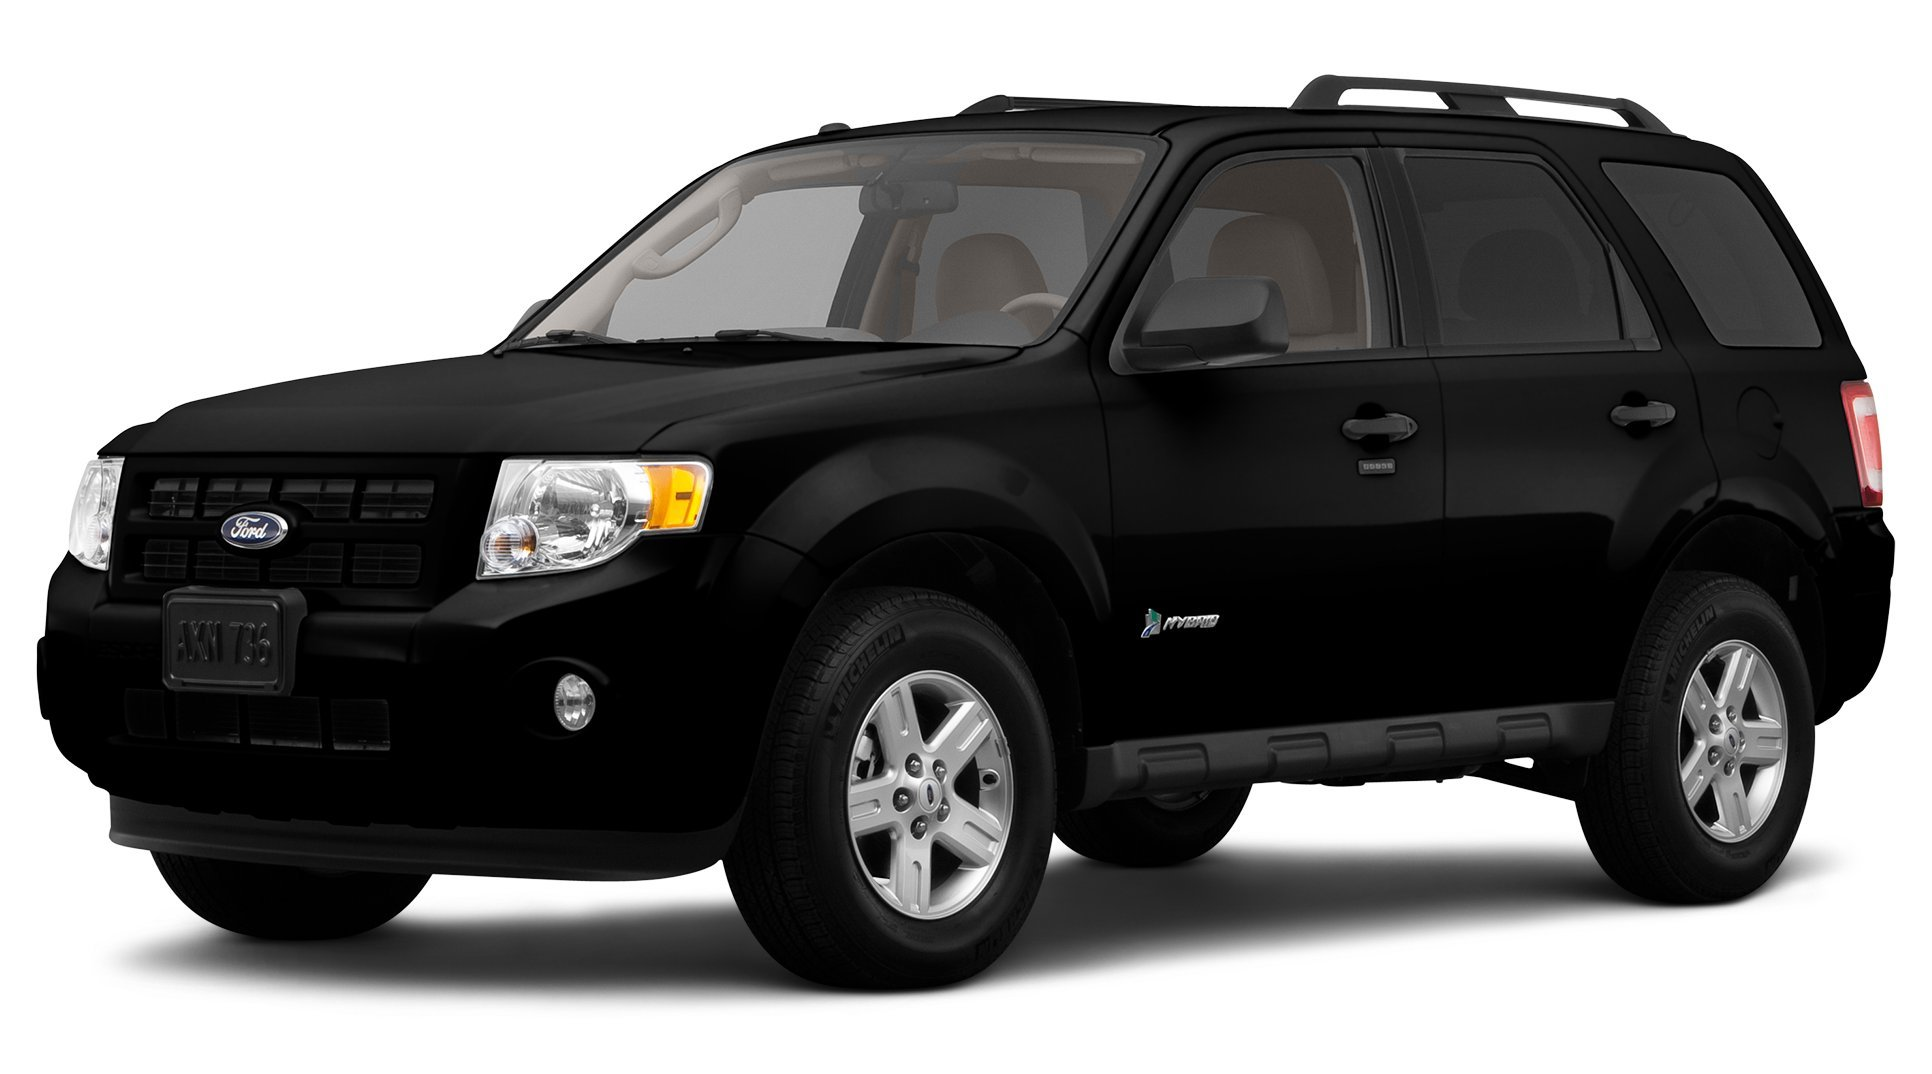 Ford Escape 2012 >> Amazon Com 2012 Ford Escape Reviews Images And Specs Vehicles